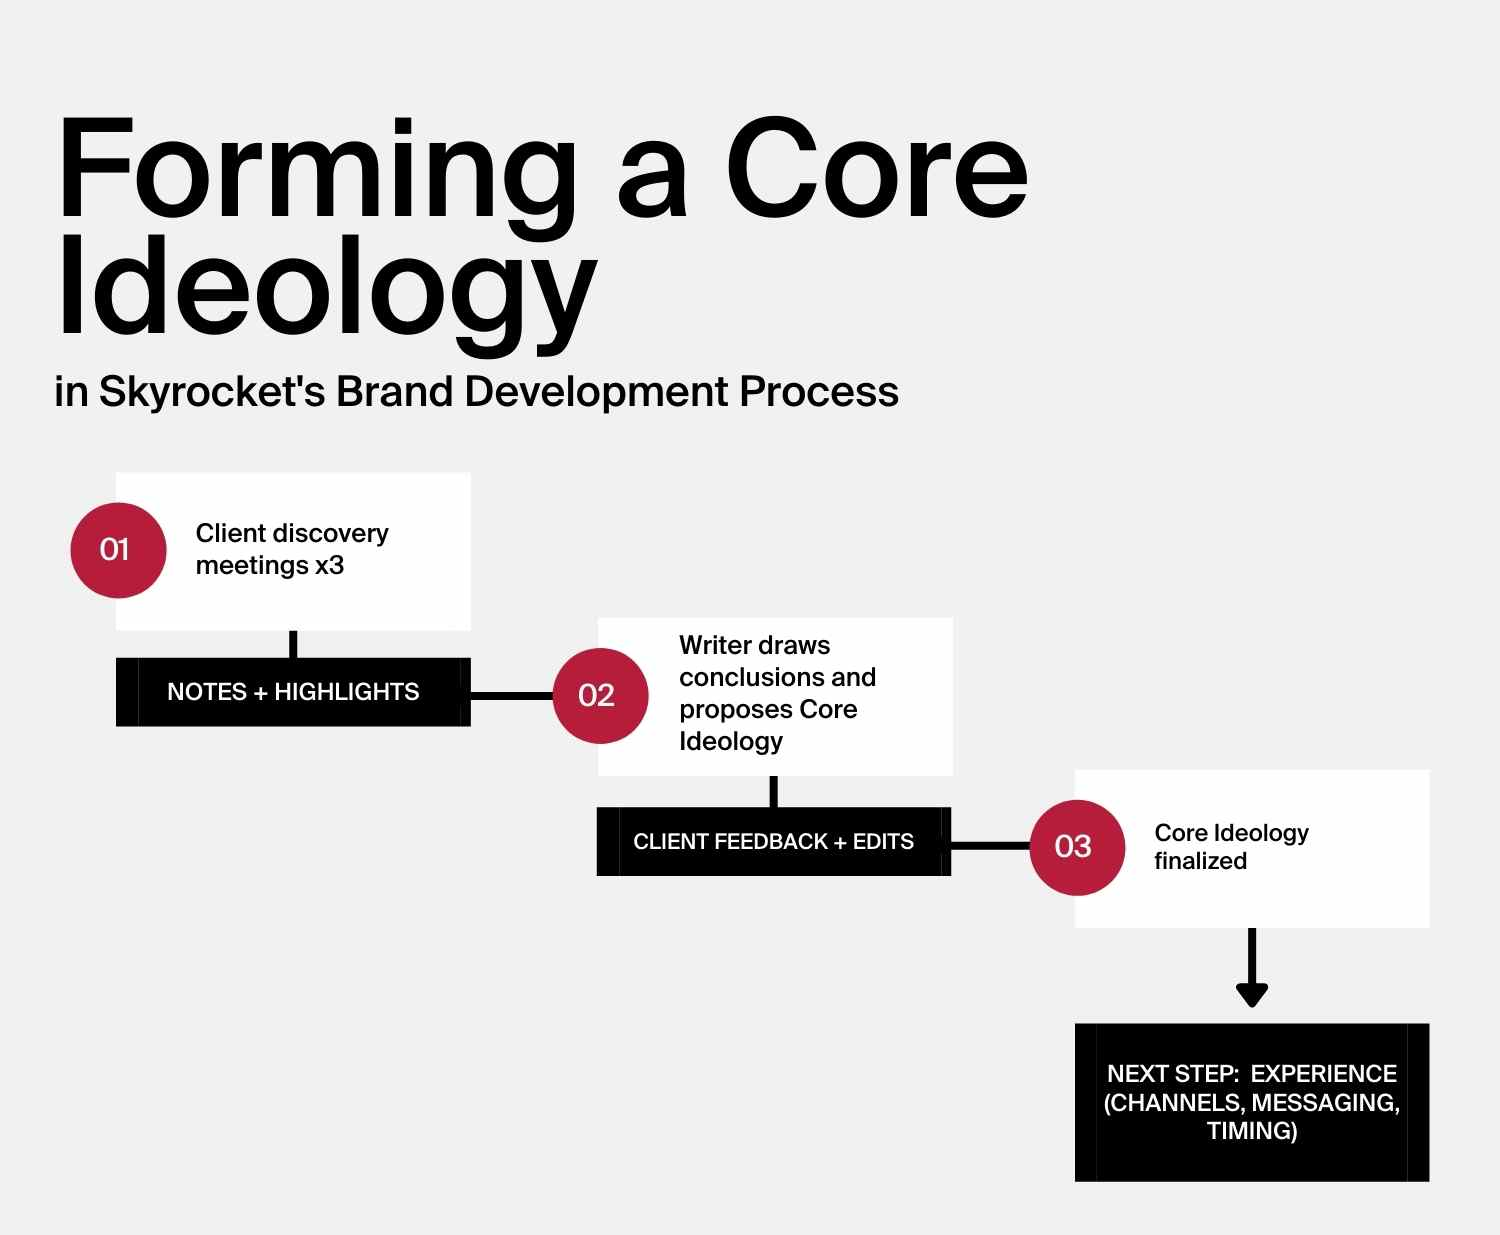 Steps in Skyrocket's brand development process to the final Core Ideology